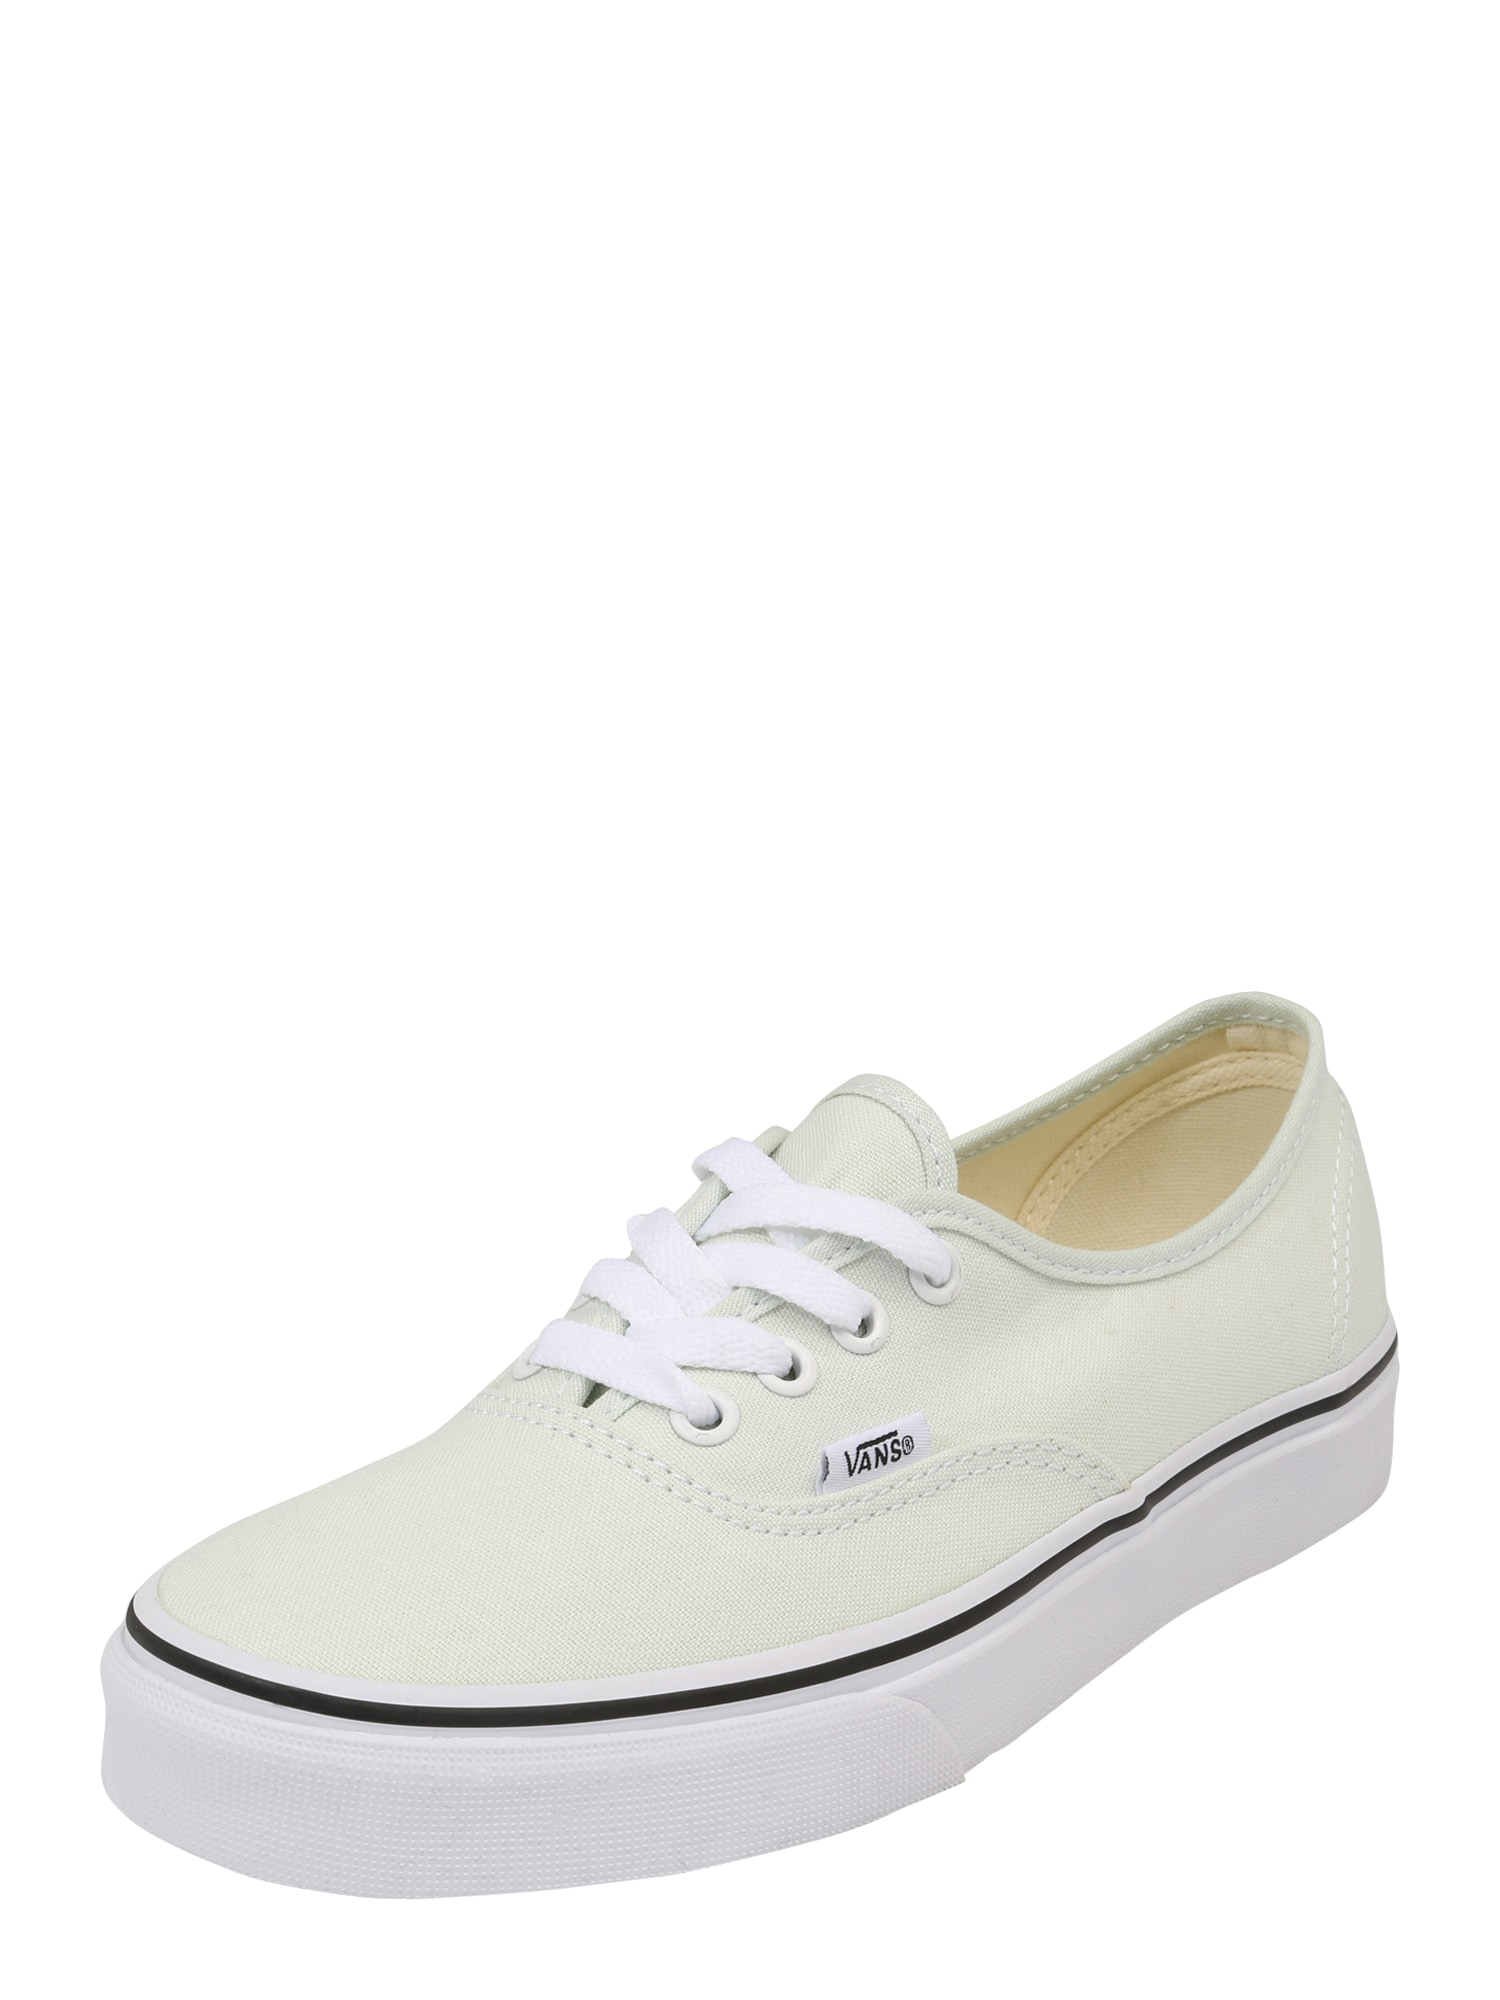 VANS, Dames Sneakers laag 'Authentic', eierschaal